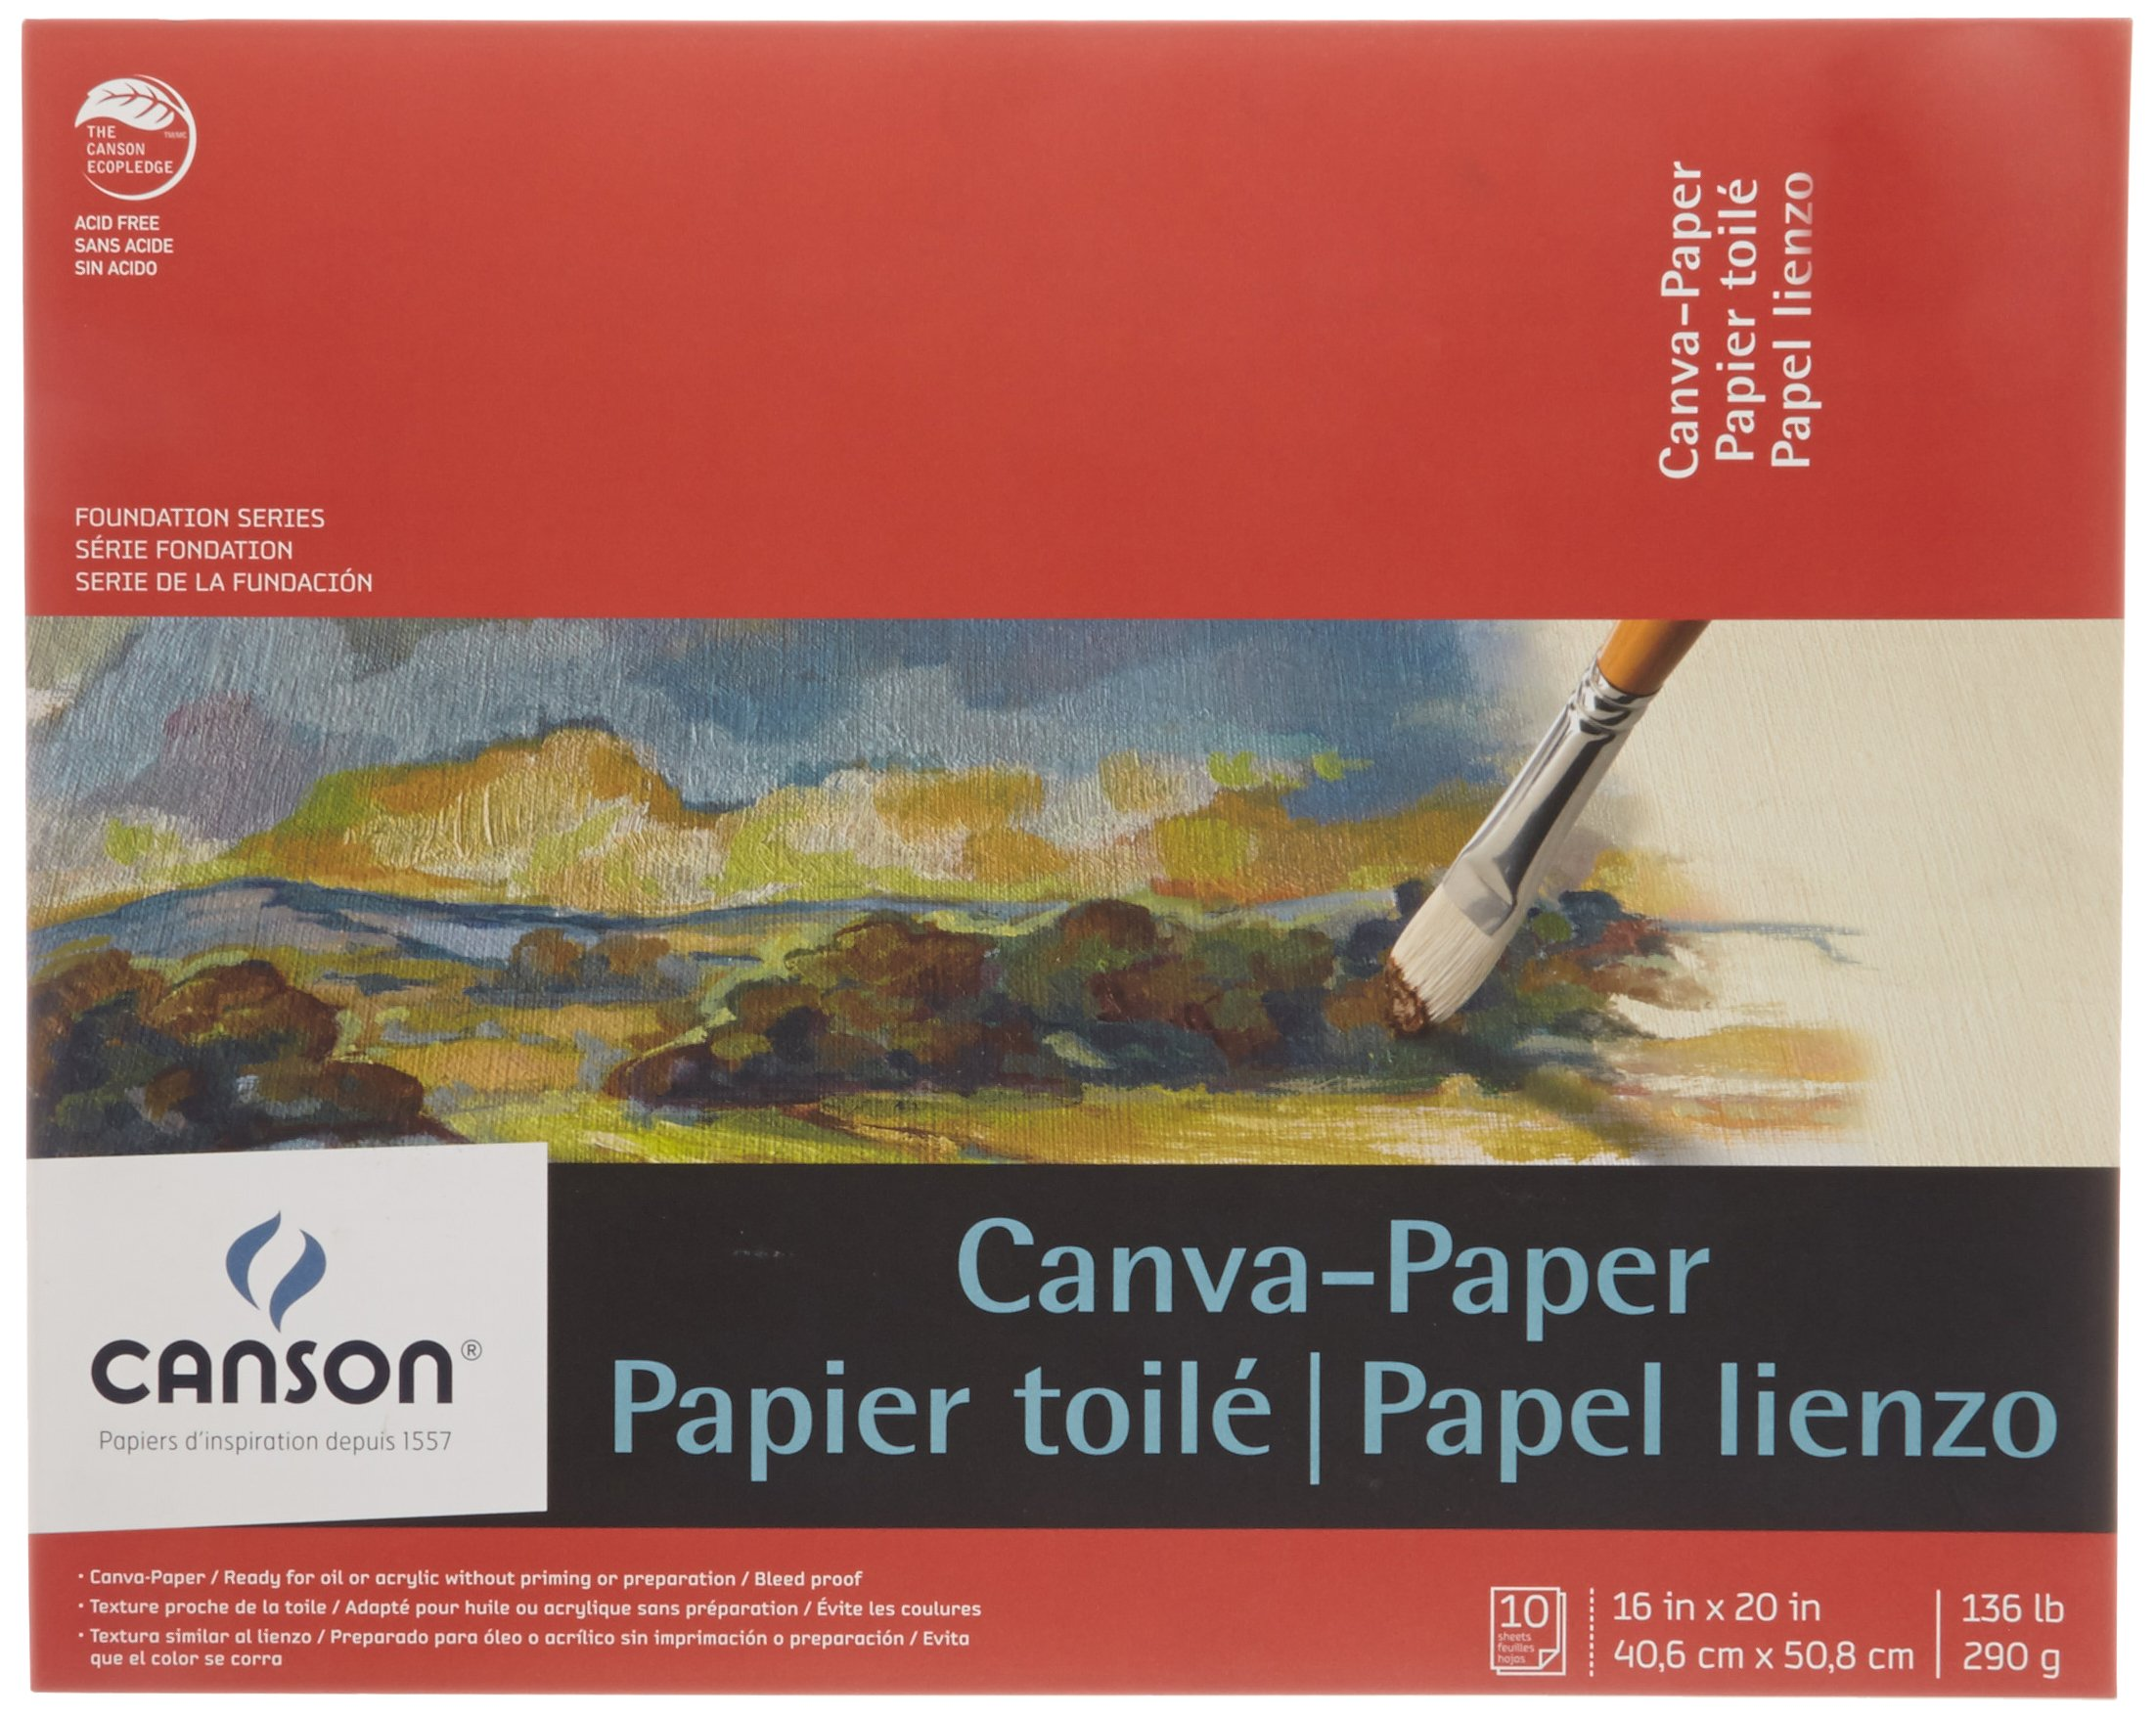 Canson Paper Canvas Pads by Canson